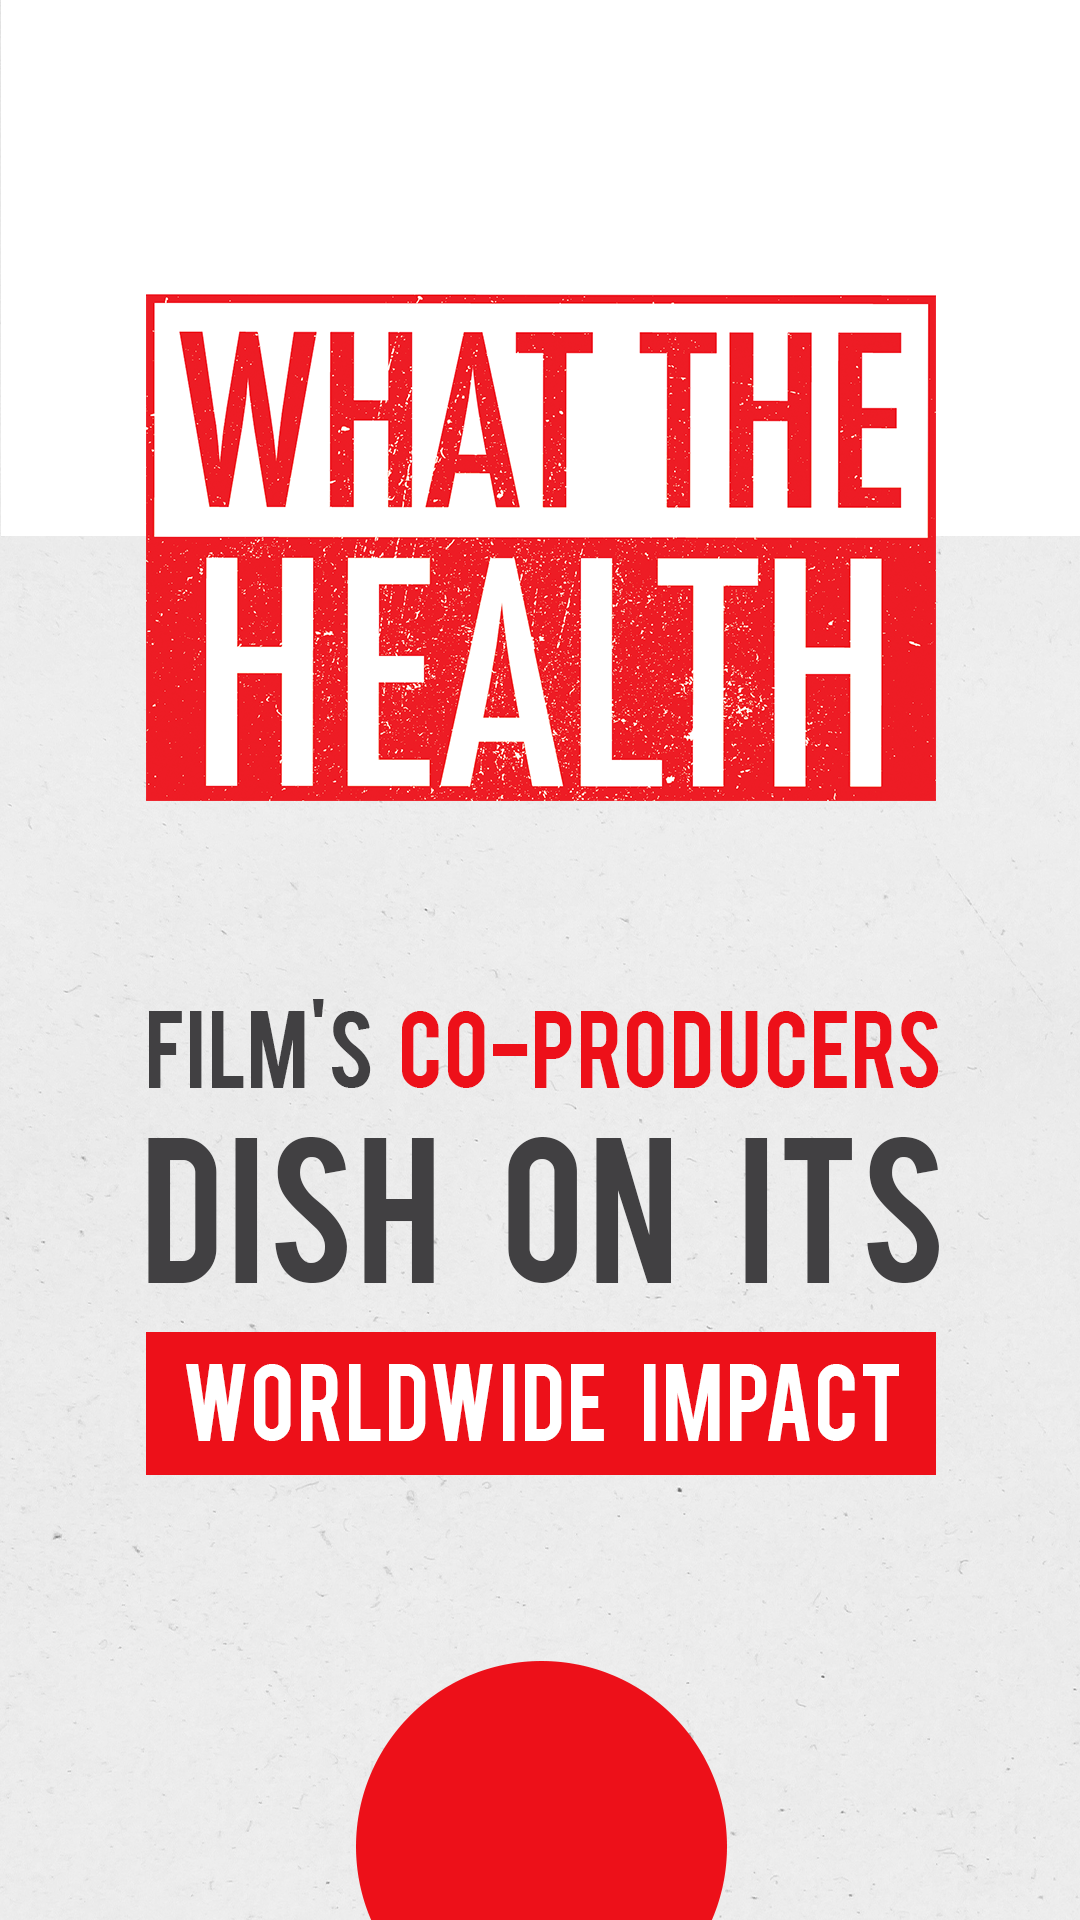 What the Health s co producers dish on its worldwide impact